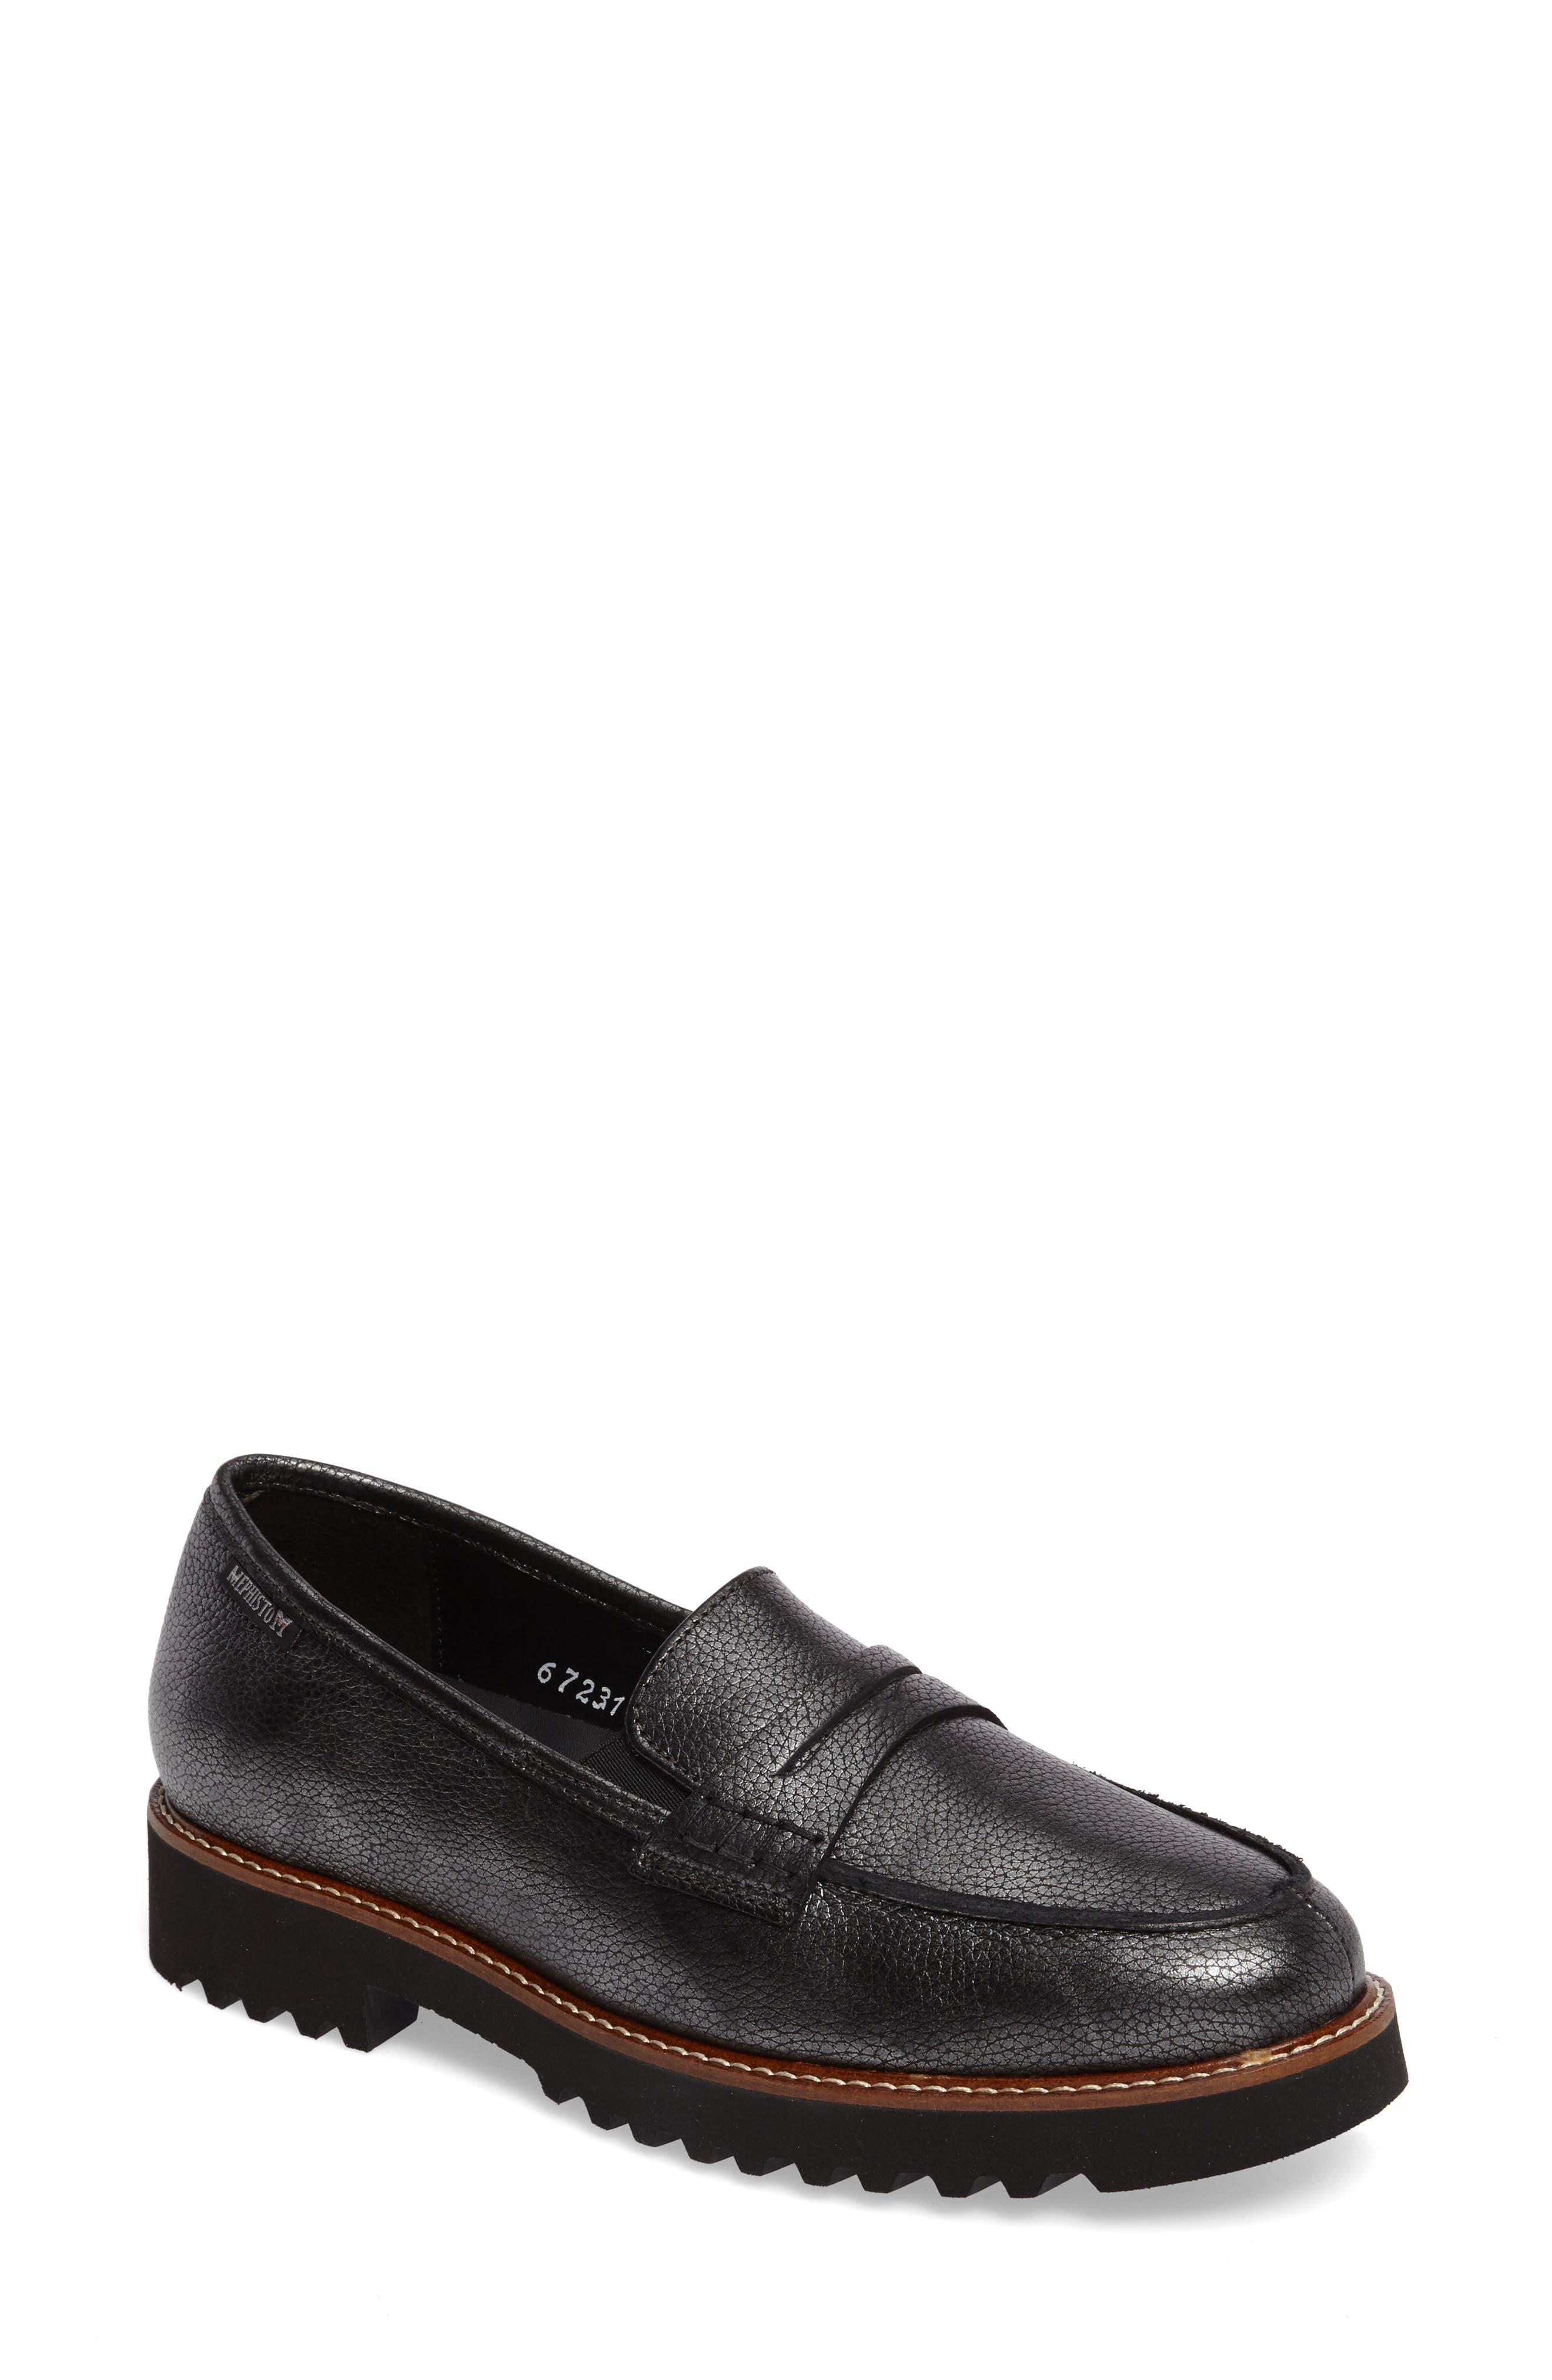 Main Image - Mephisto Sidney Penny Loafer (Women)